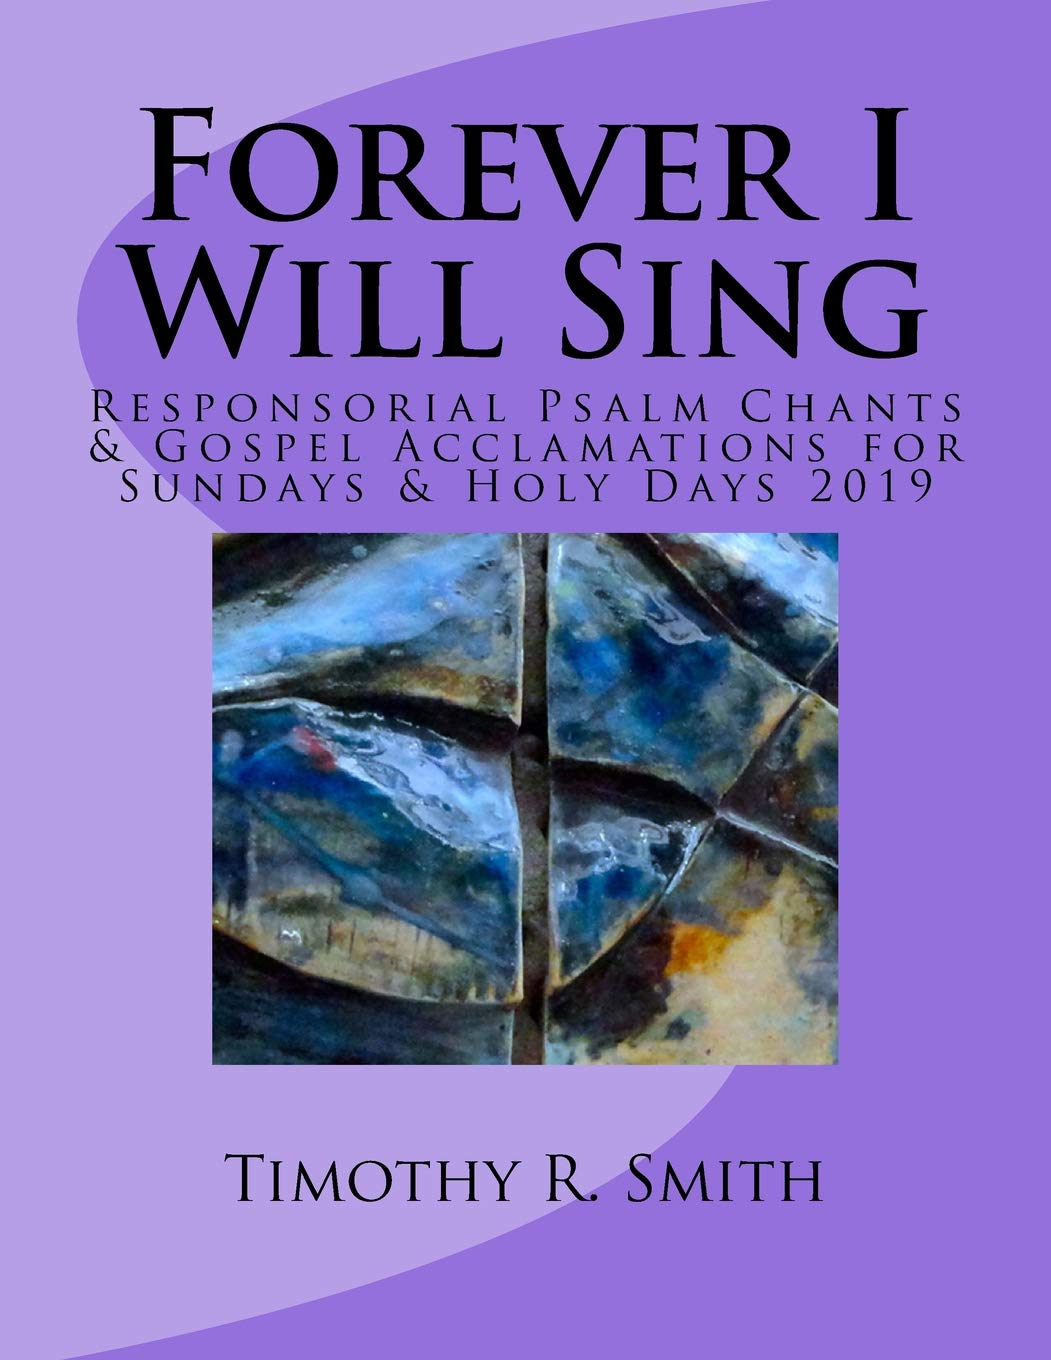 Forever I Will Sing Responsorial Psalm Chants Gospel Acclamations